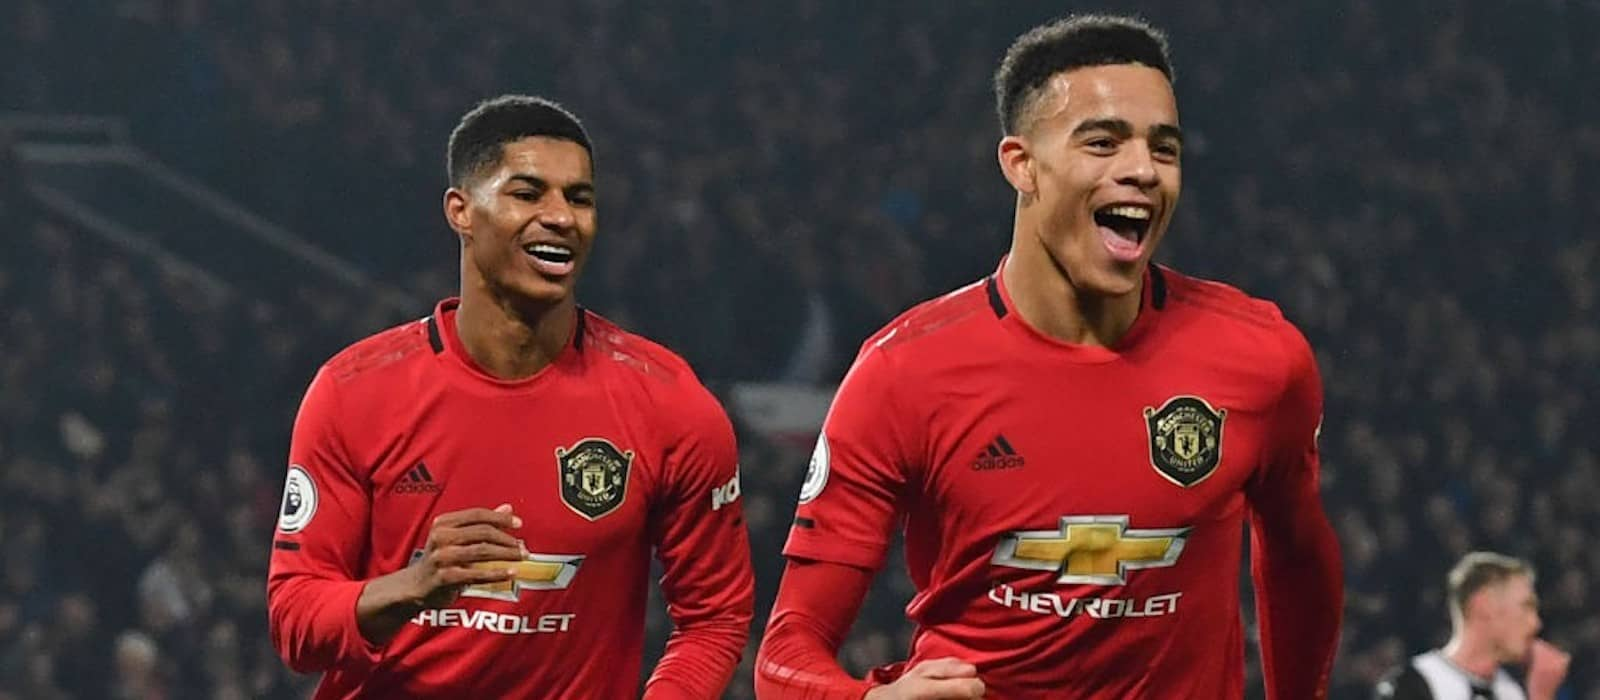 Rio Ferdinand compares Mason Greenwood to Michael Owen